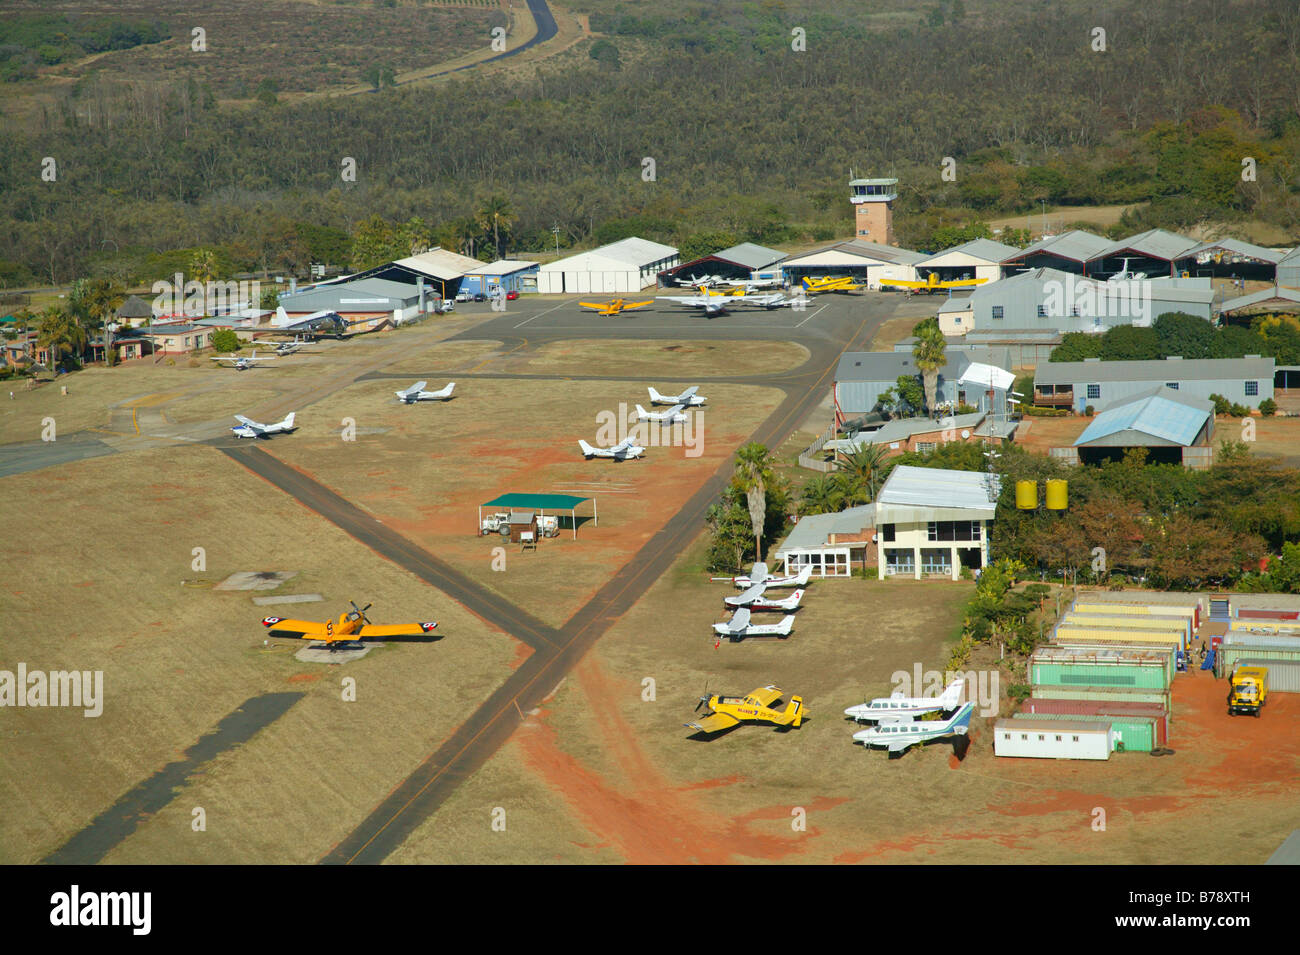 Aerial view of the Nelspruit airfield on the outskirts of Nelspruit - Stock Image